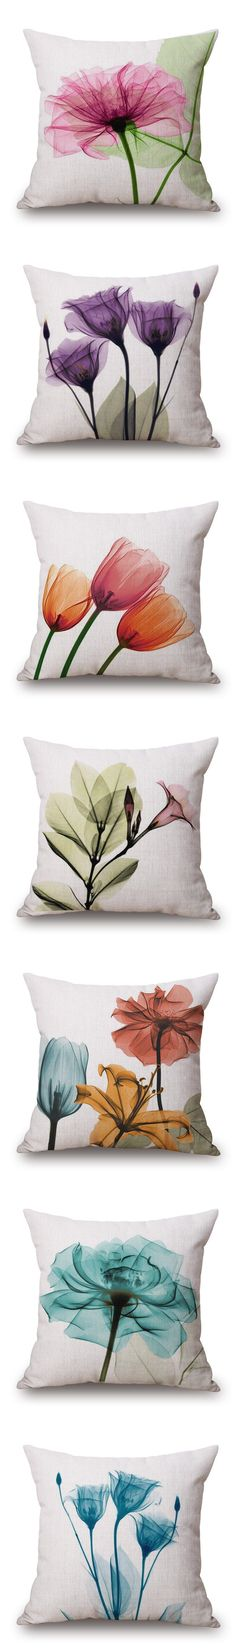 38 Pillows Decoration That Make Your Place Look Cool - Home Decoration - Interior Design Ideas Fabric Painting, Fabric Art, Sewing Crafts, Sewing Projects, Diy And Crafts, Arts And Crafts, Flower Pillow, Sewing Pillows, Decorative Pillow Cases